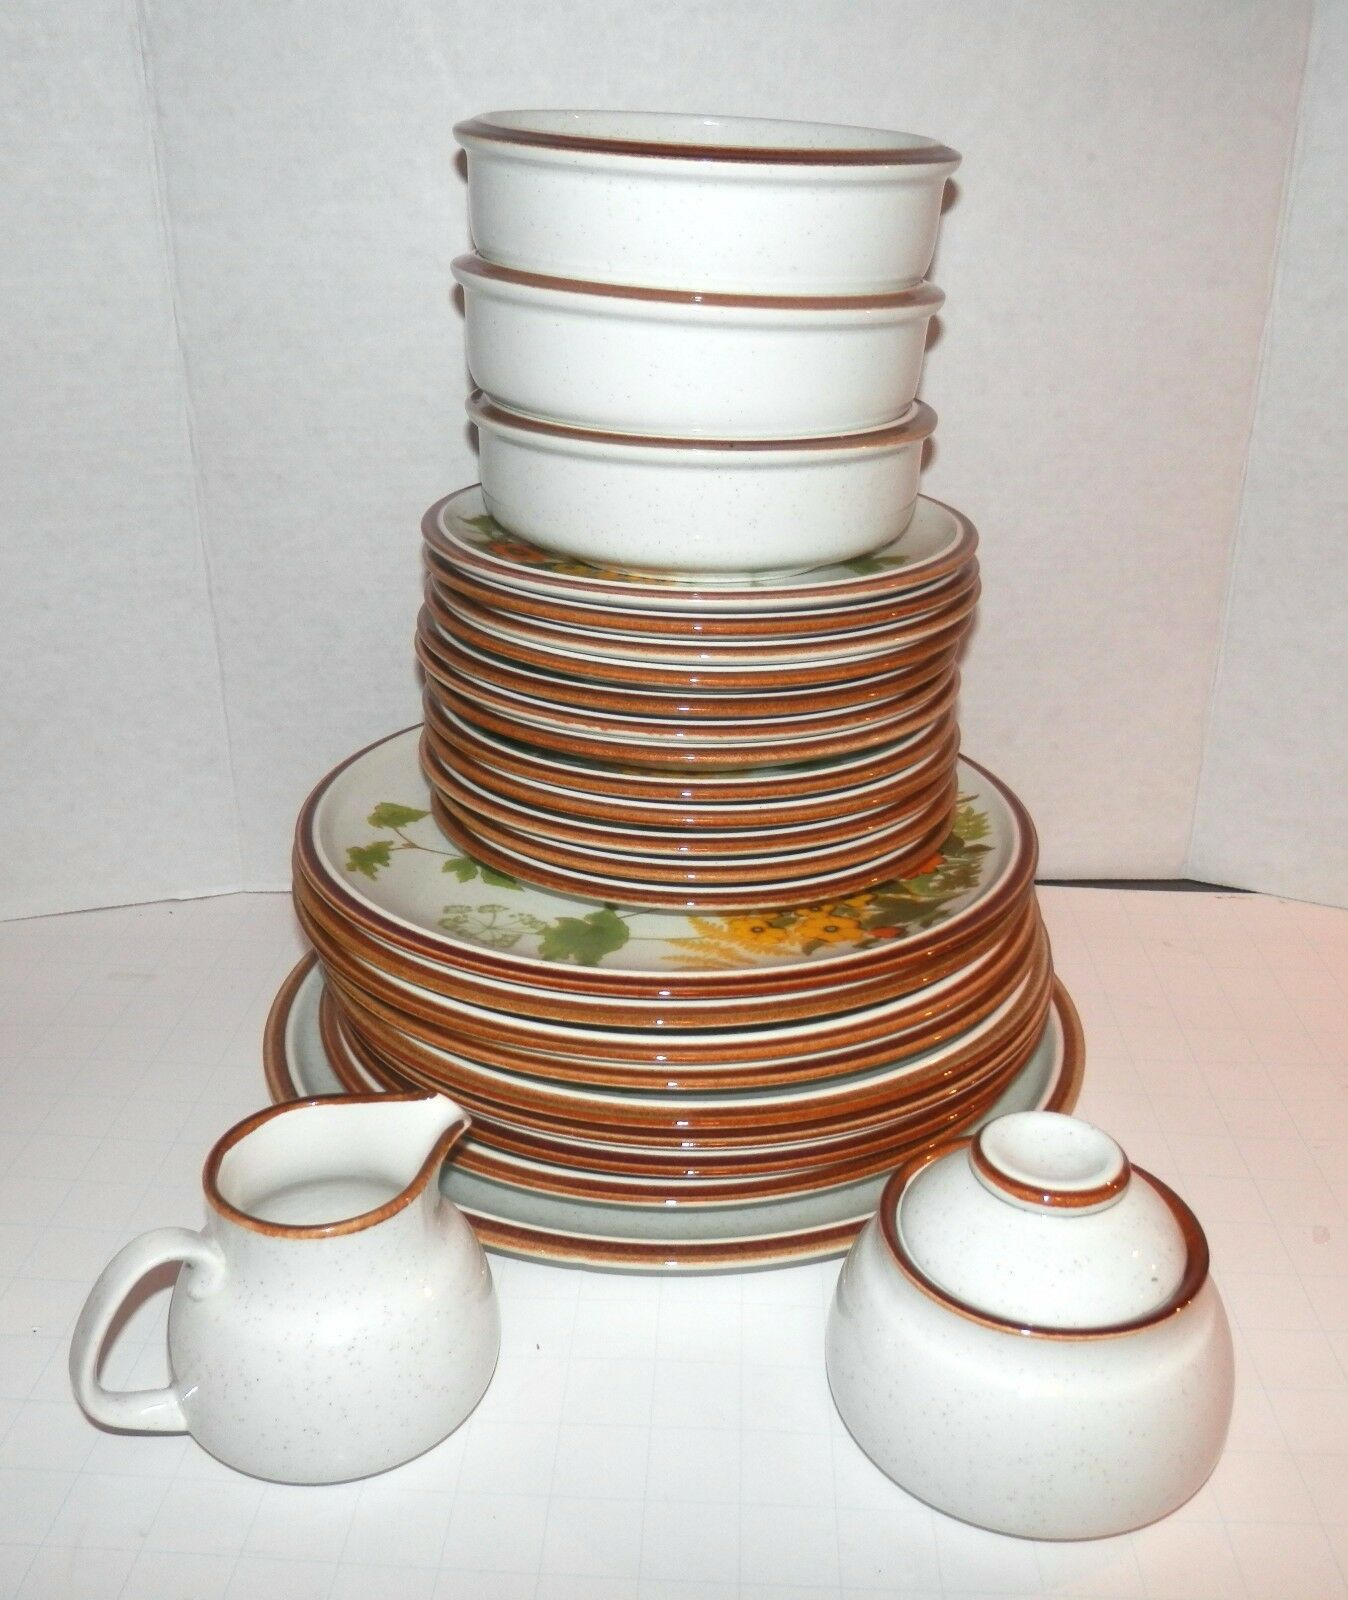 Mikasa NATURAL BEAUTY Fresh From the Garden Dinner Chop Plate Cereal Salad Bowls